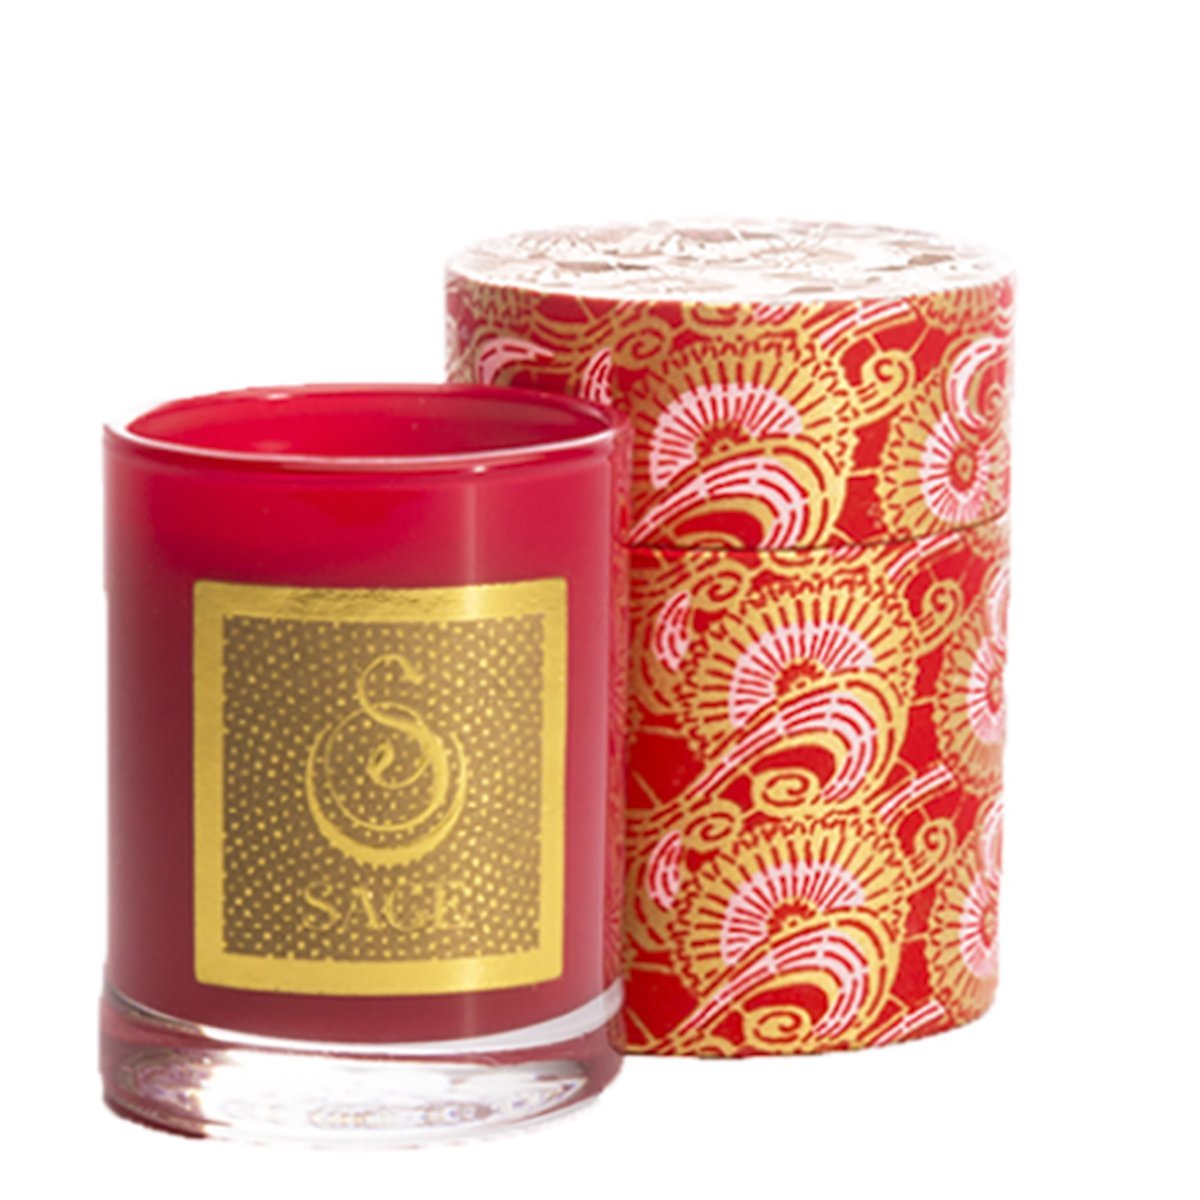 Sage Decorative Scented Candle in Garnet